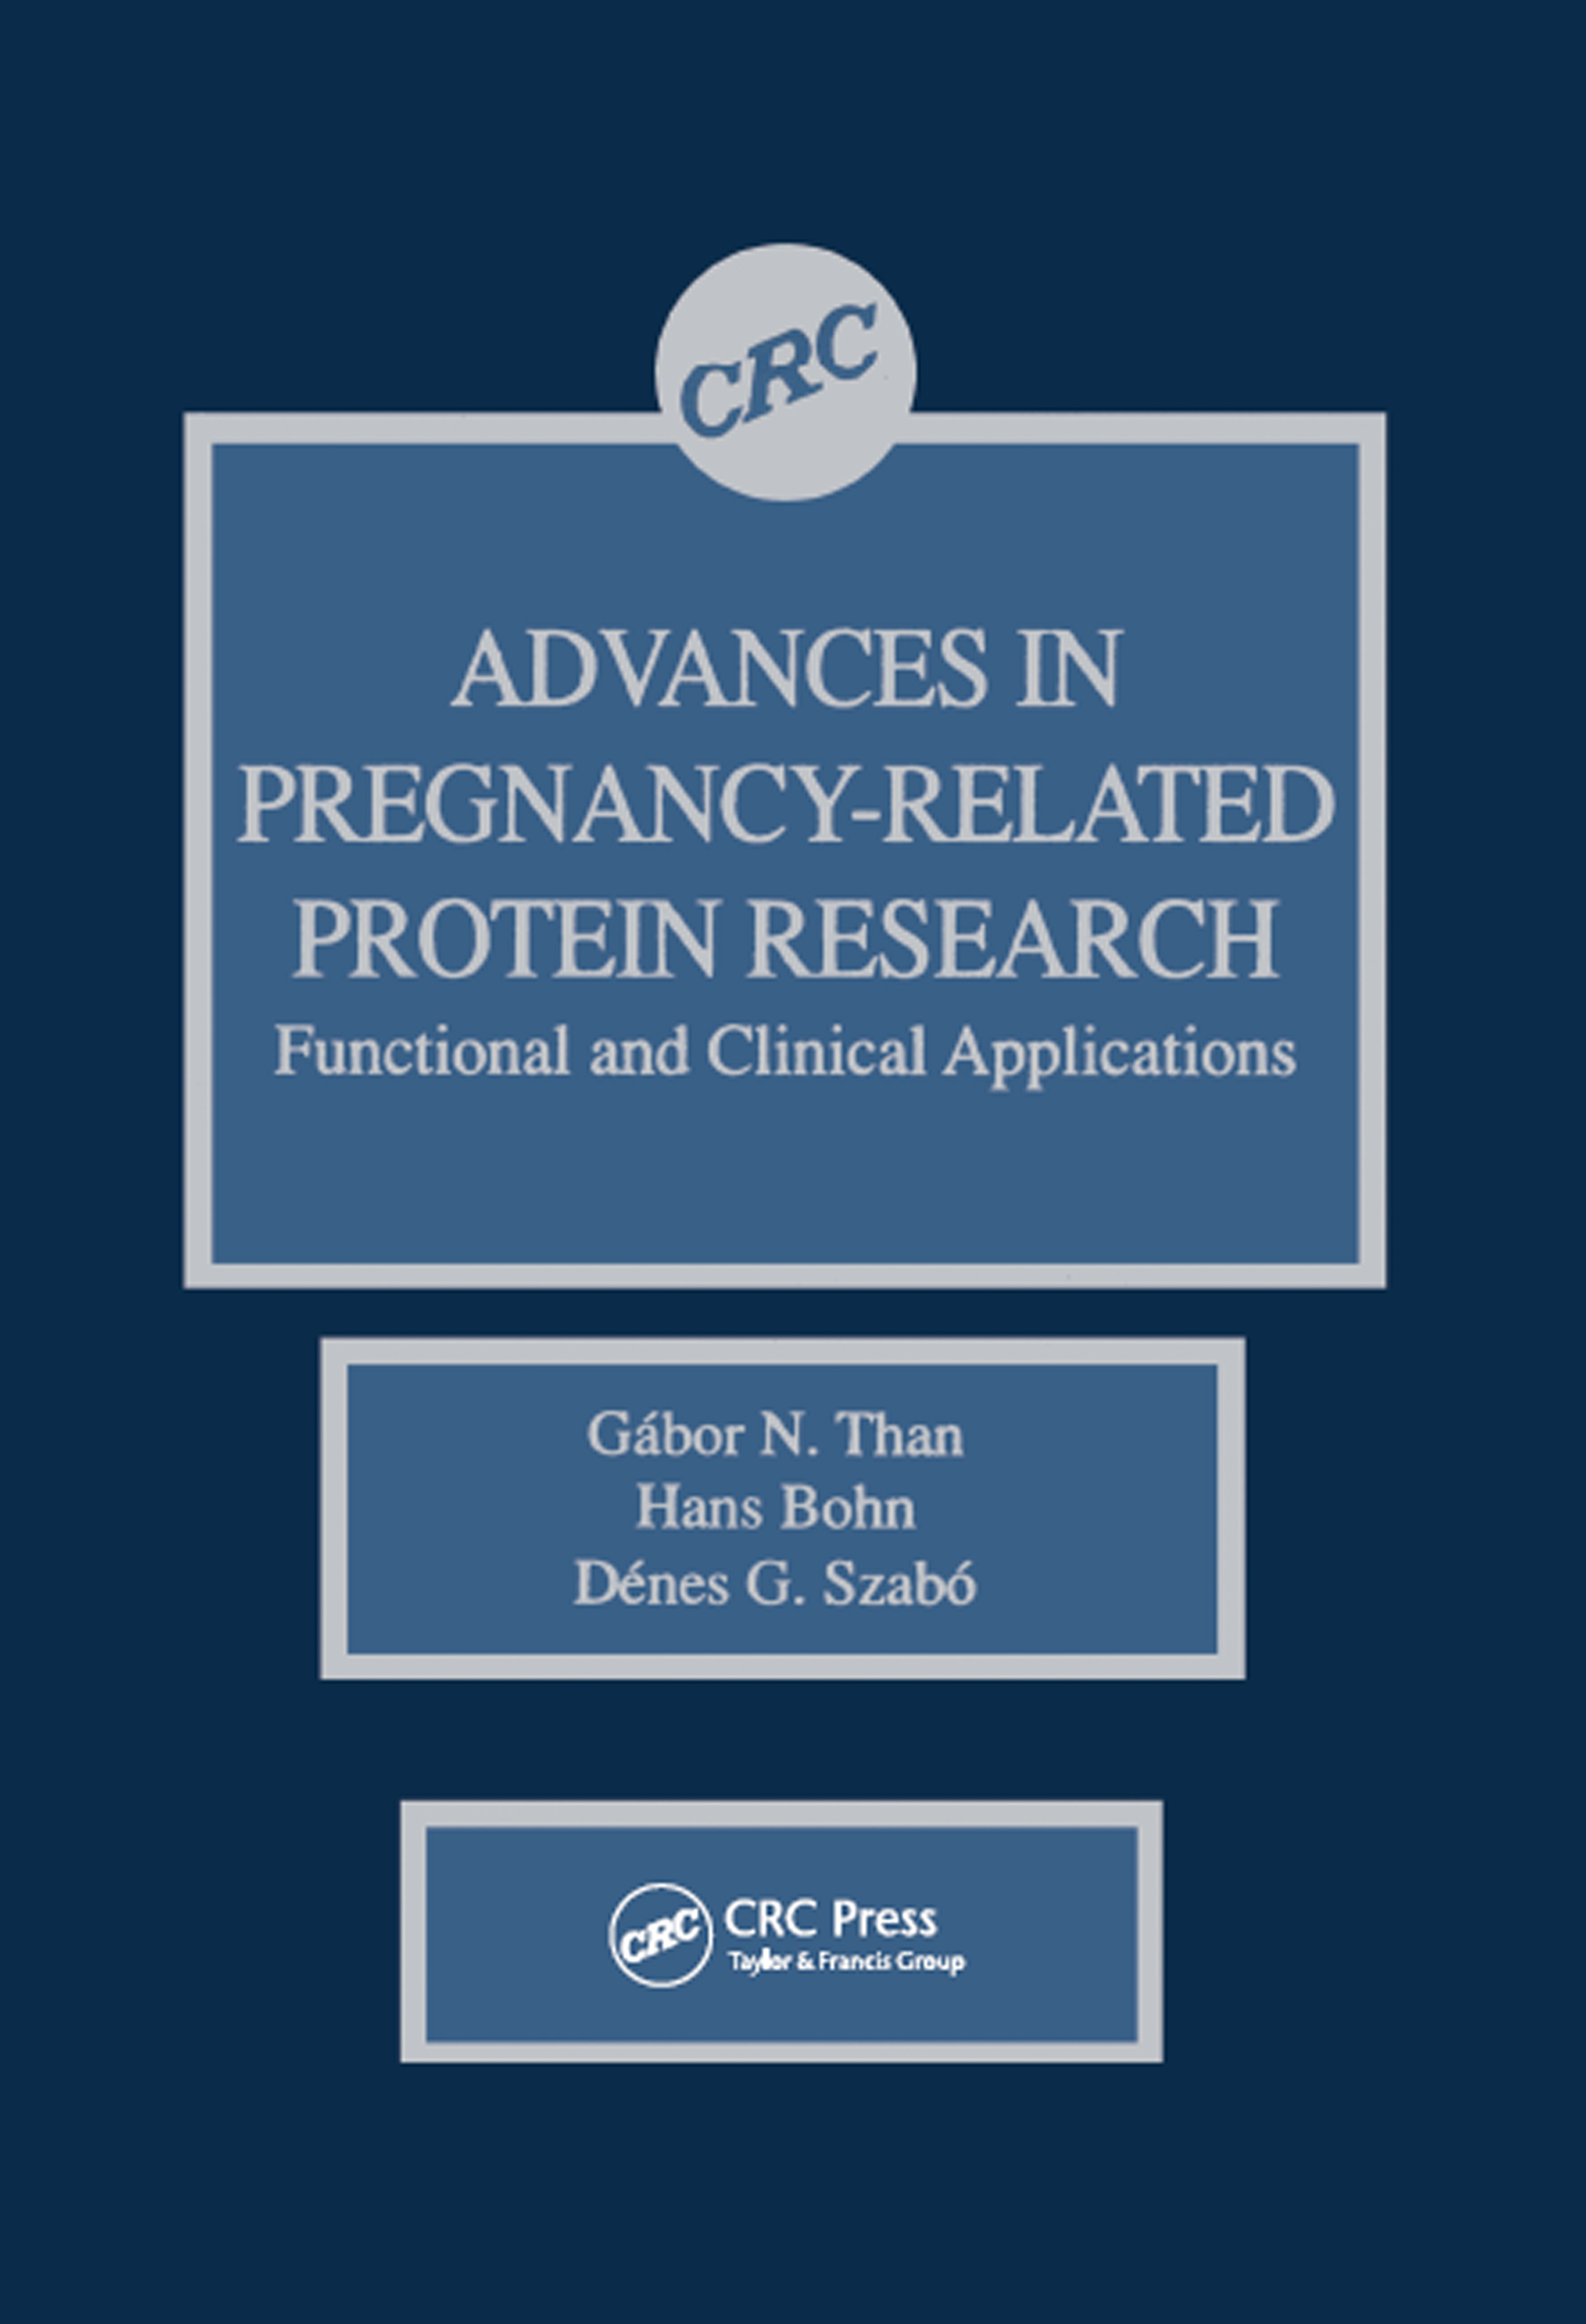 Advances in Pregnancy-Related Protein Research Functional and Clinical Applications